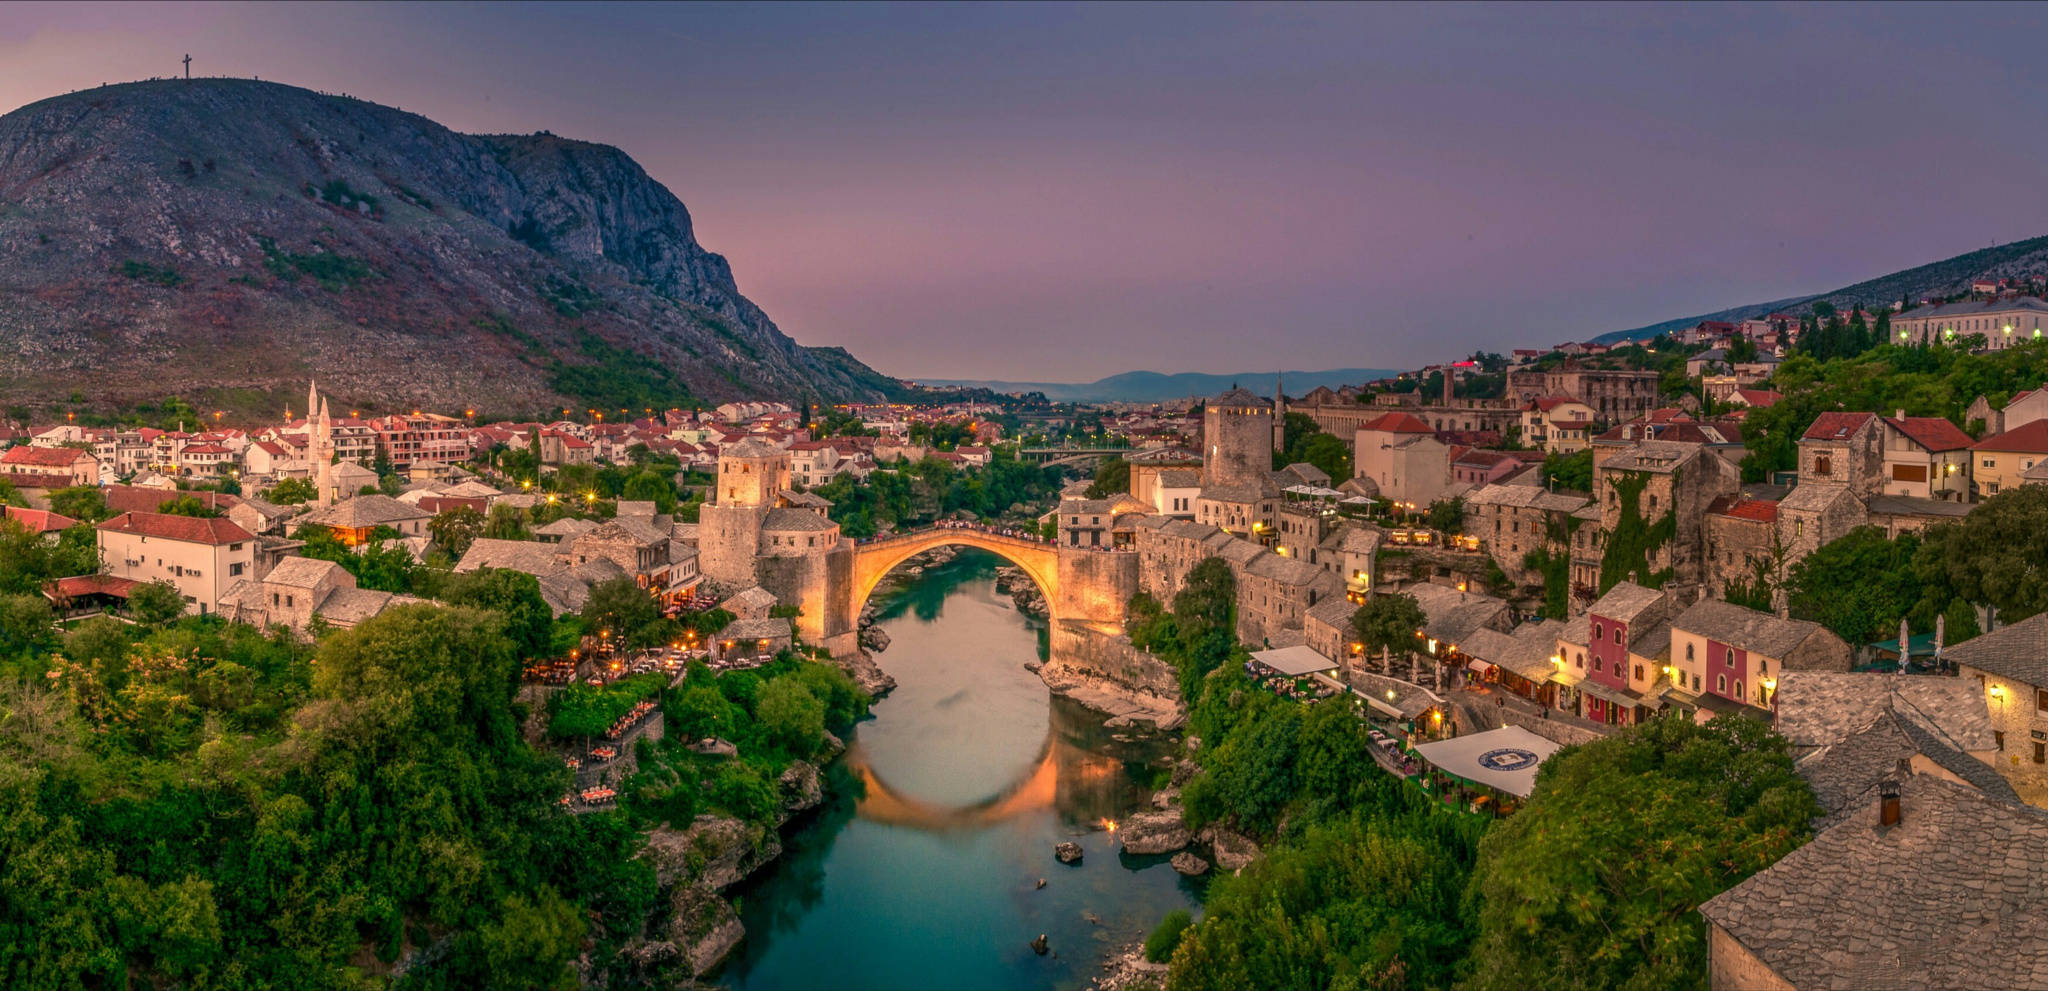 Mostar, Bosnia and Herzegovina - Monterrasol small group tours to Mostar, Bosnia and Herzegovina. Travel agency offers small group car tours to see Mostar in Bosnia and Herzegovina. Order small group tour to Mostar with departure date on request.